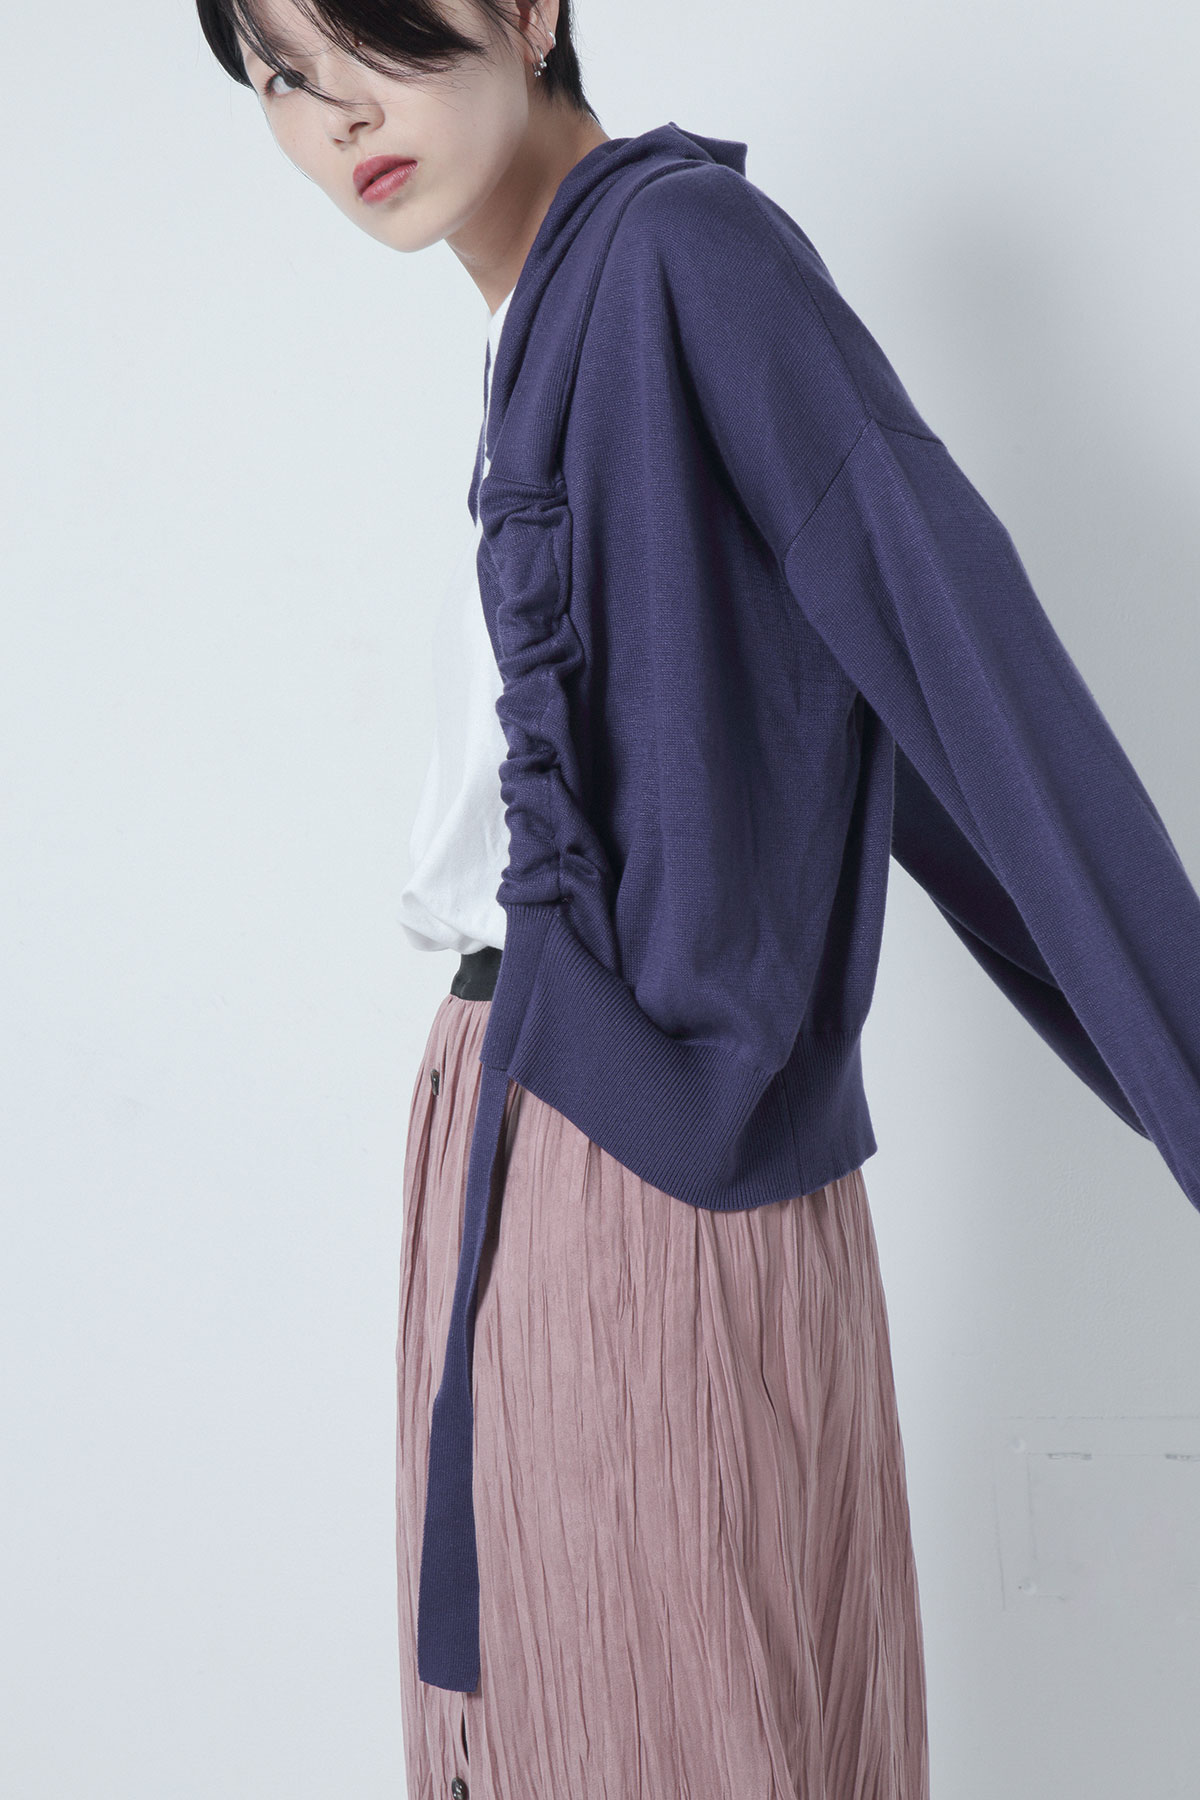 BO205806-bluepurple Allday Cotton/silk Knit Cucullus Hoodie Draped Cardigan -BLUE PURPLE-【BO205806】Del. Nov.